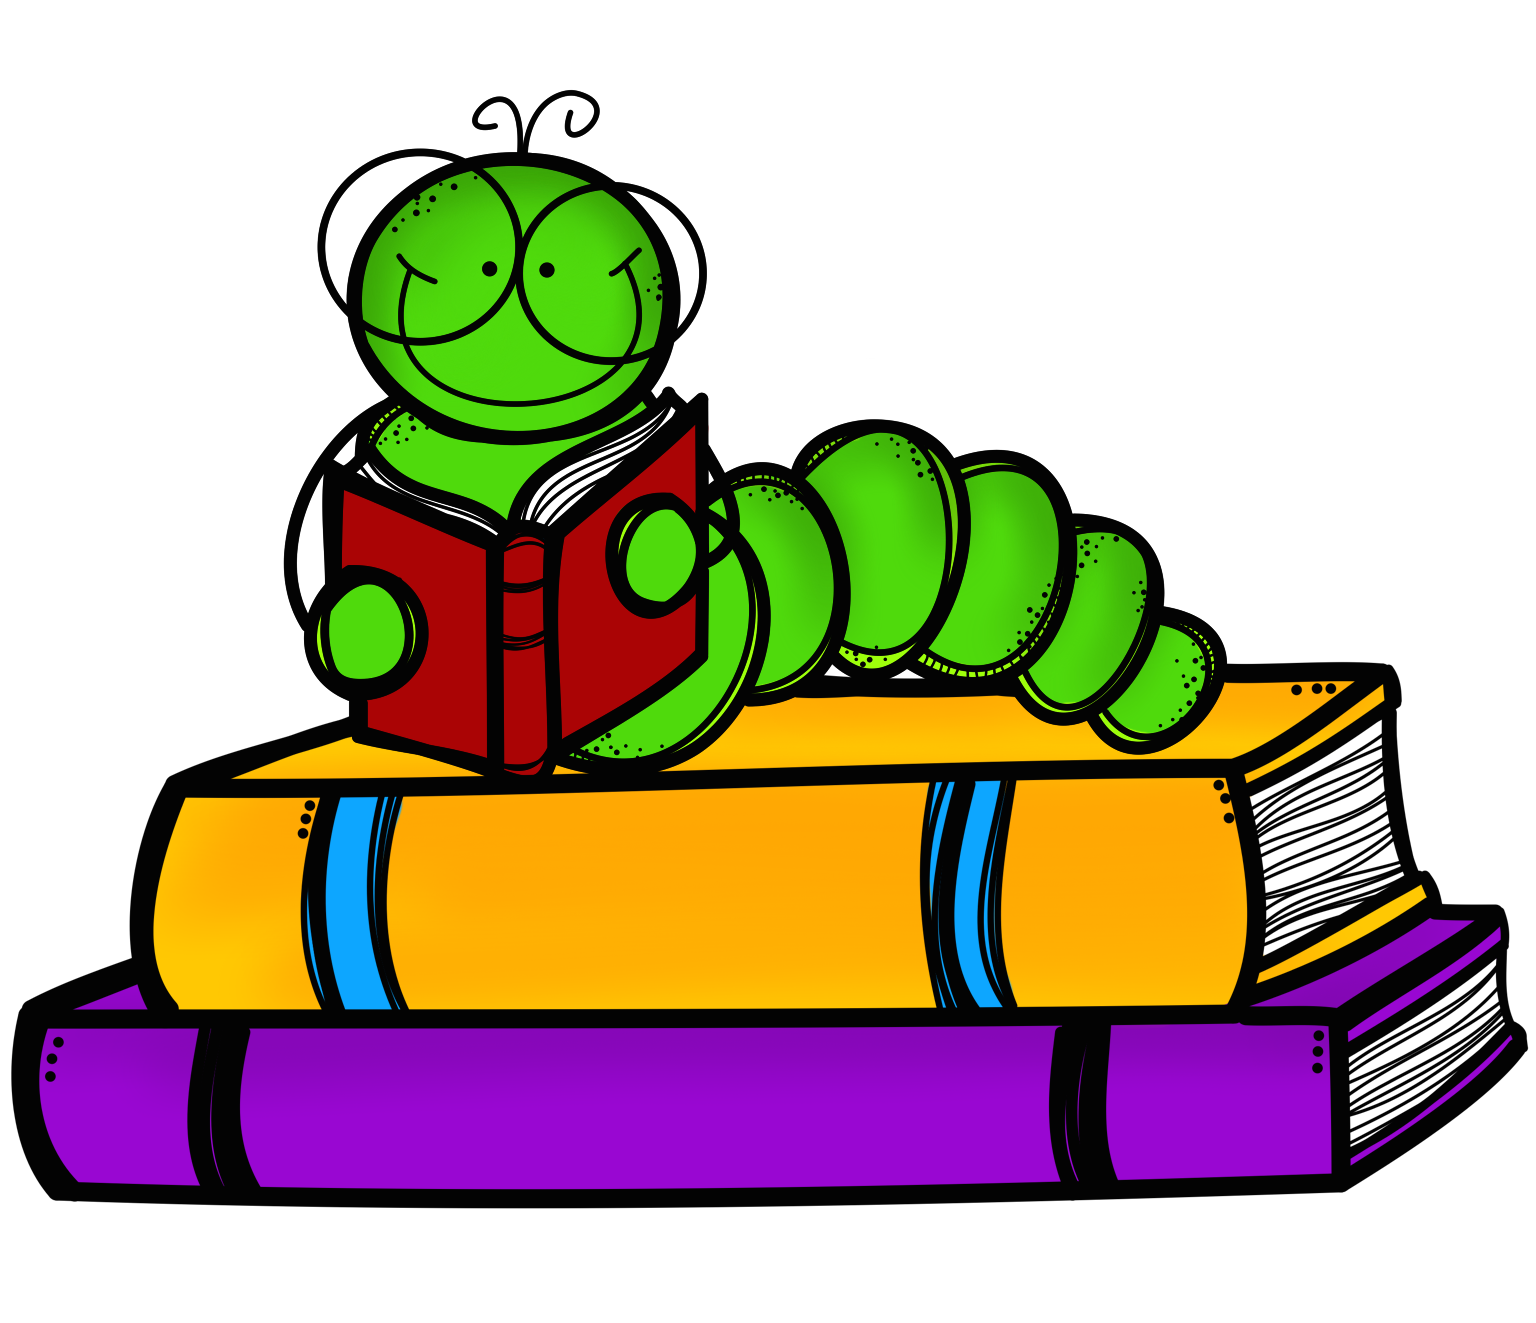 Book group clipart jpg freeuse 5th Annual Used Book Swap – Welcome to the Newbury Elementary School ... jpg freeuse